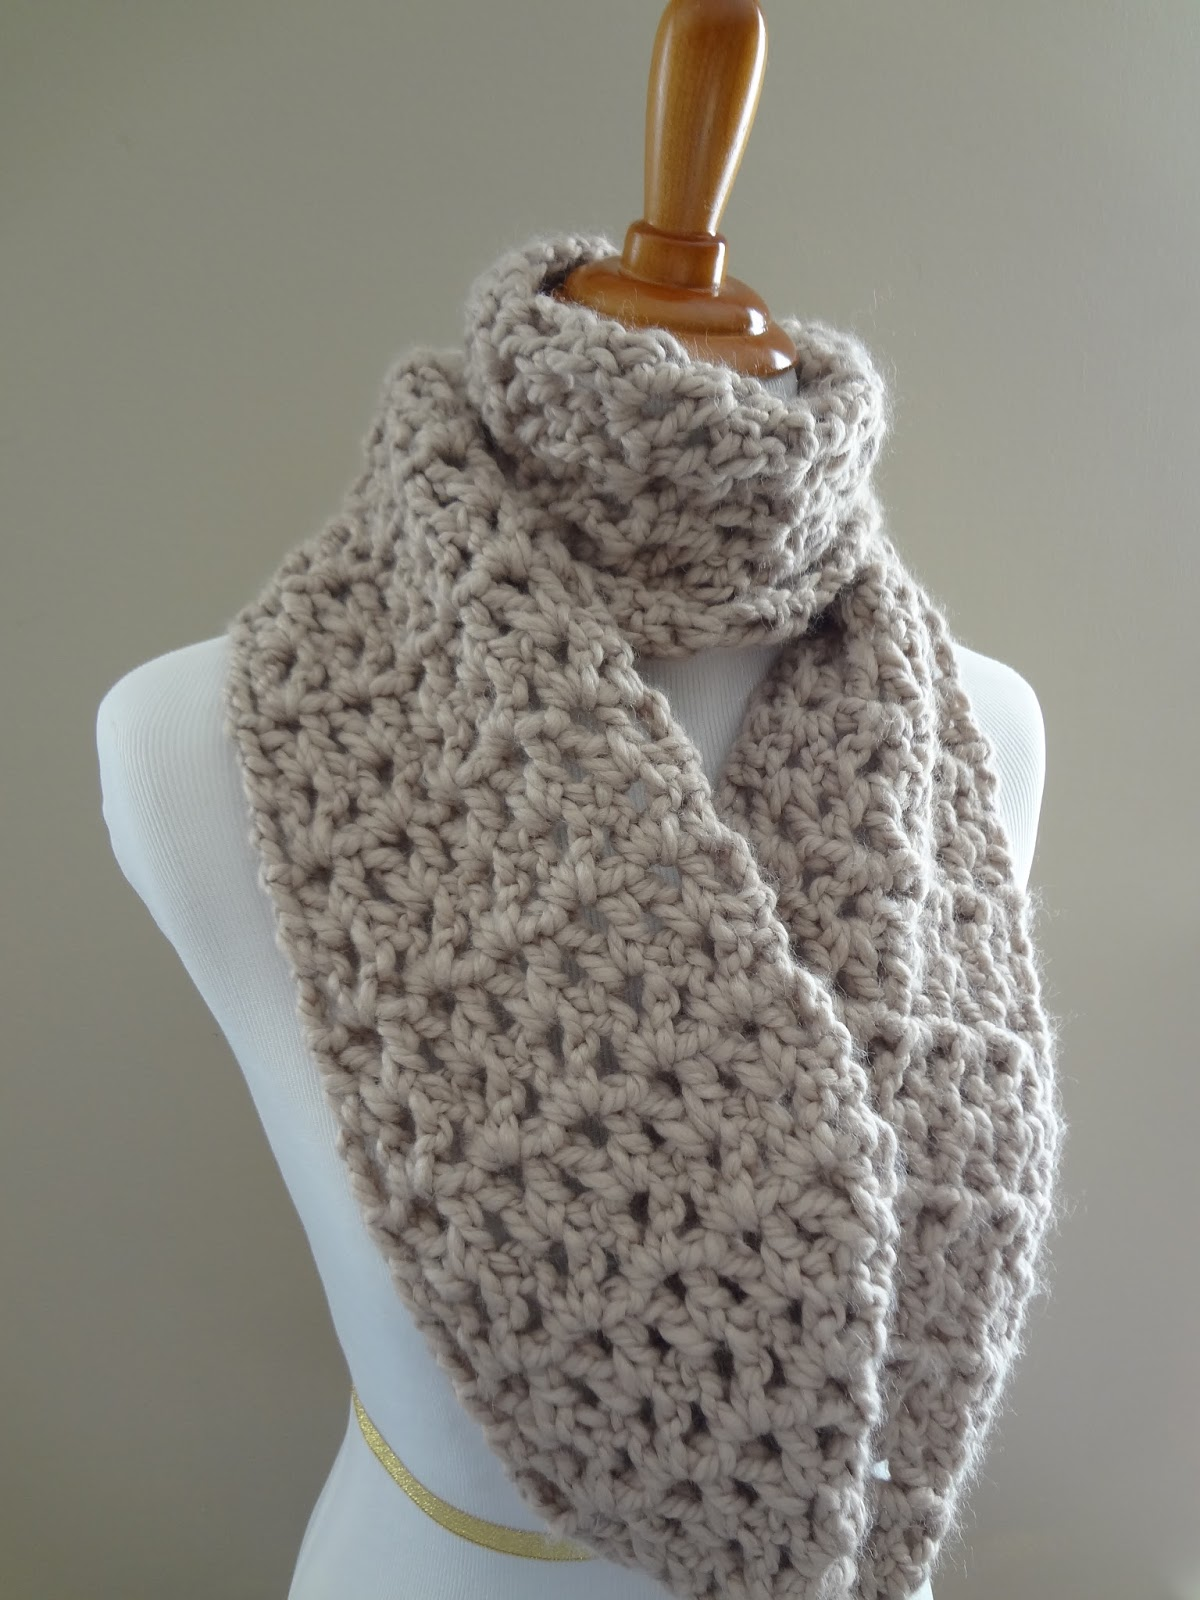 Crochet Stitches Good For Scarves : scarf pictured is 60 inches long easily customize Easy Free Crochet ...